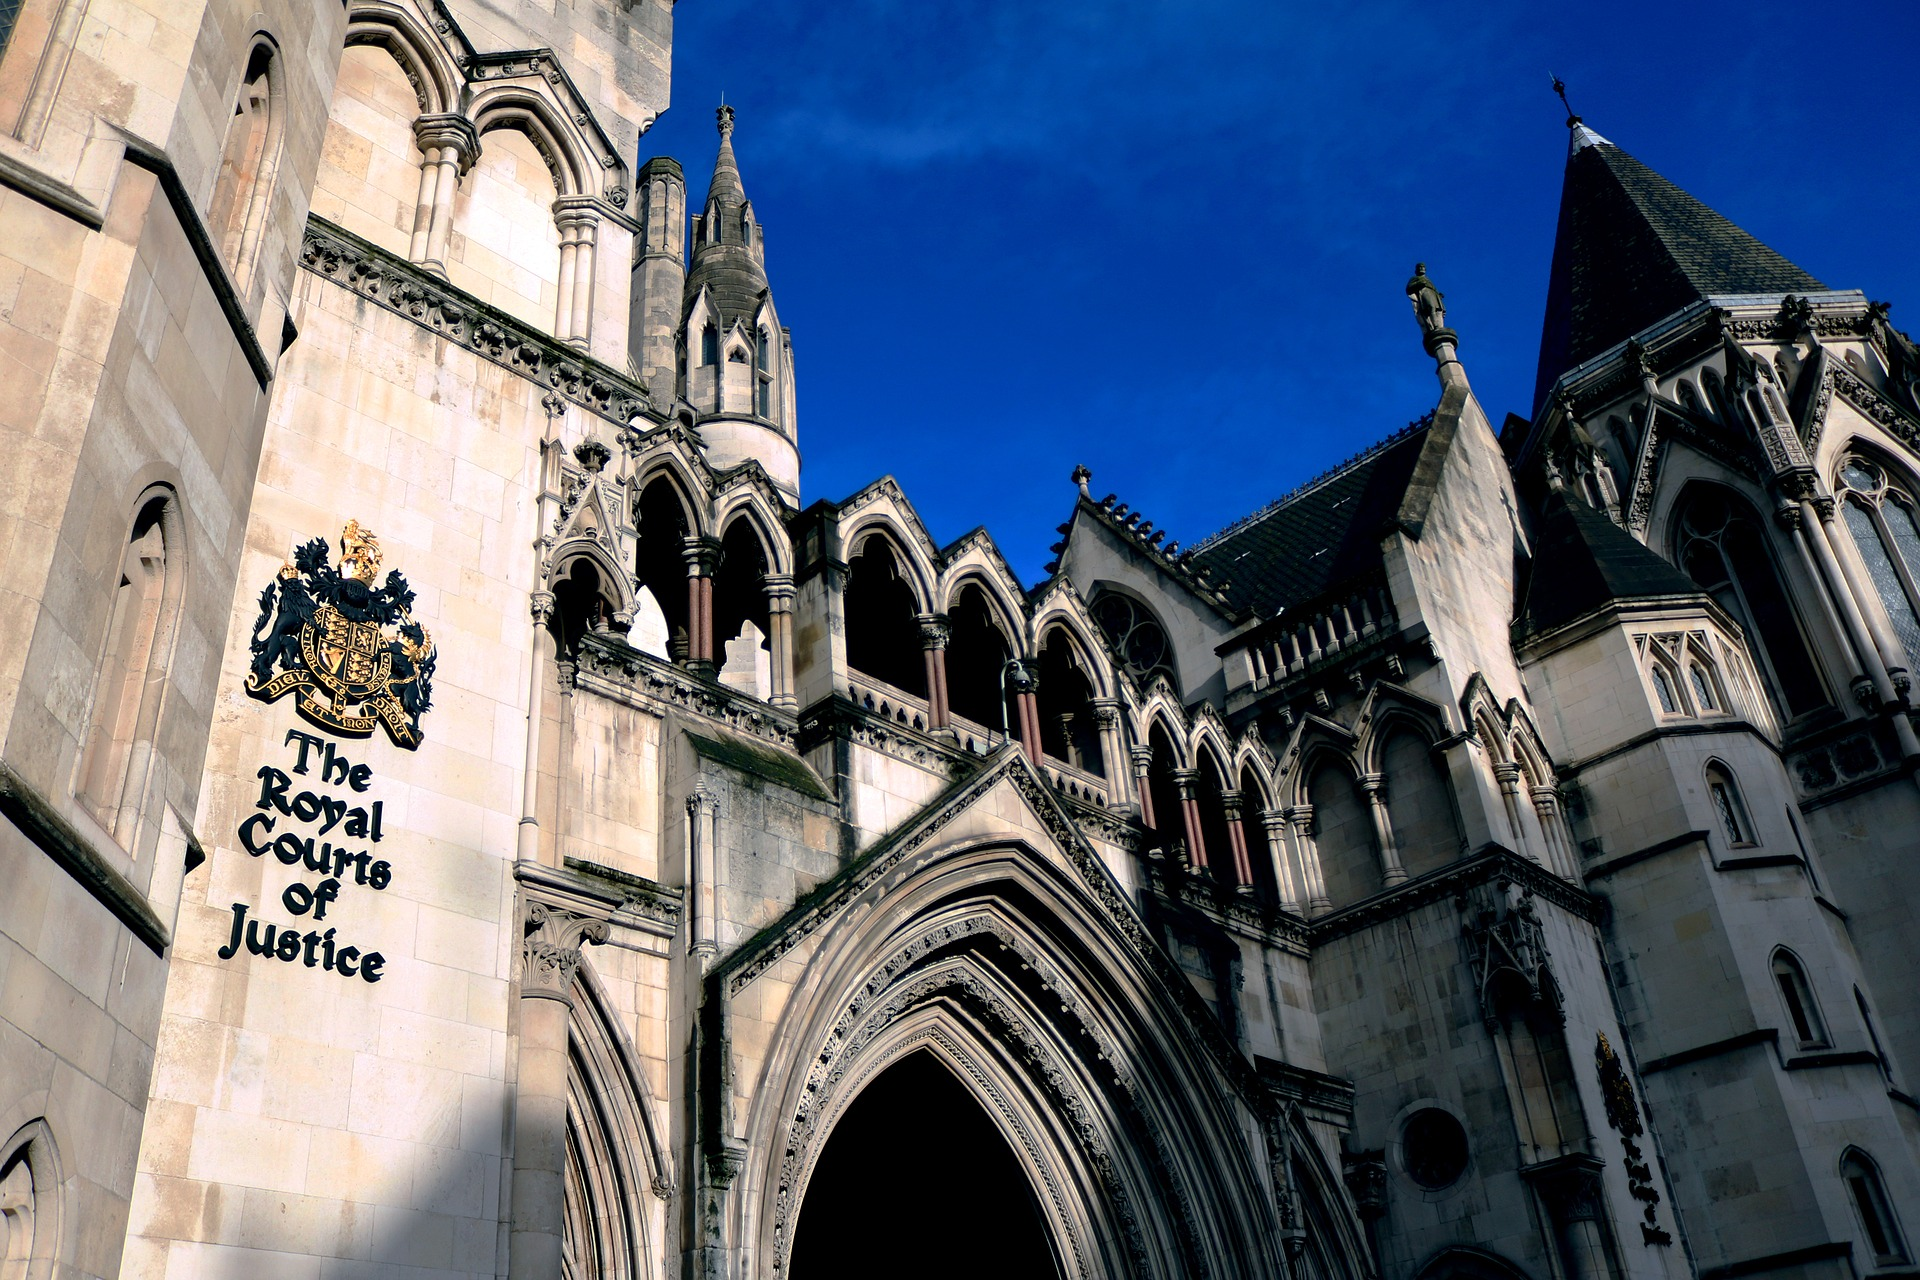 Chawla lost his appeals against extradition both in the European Court of Human Rights and the Royal Courts of Justice in London. Photo courtesy: Pixabay